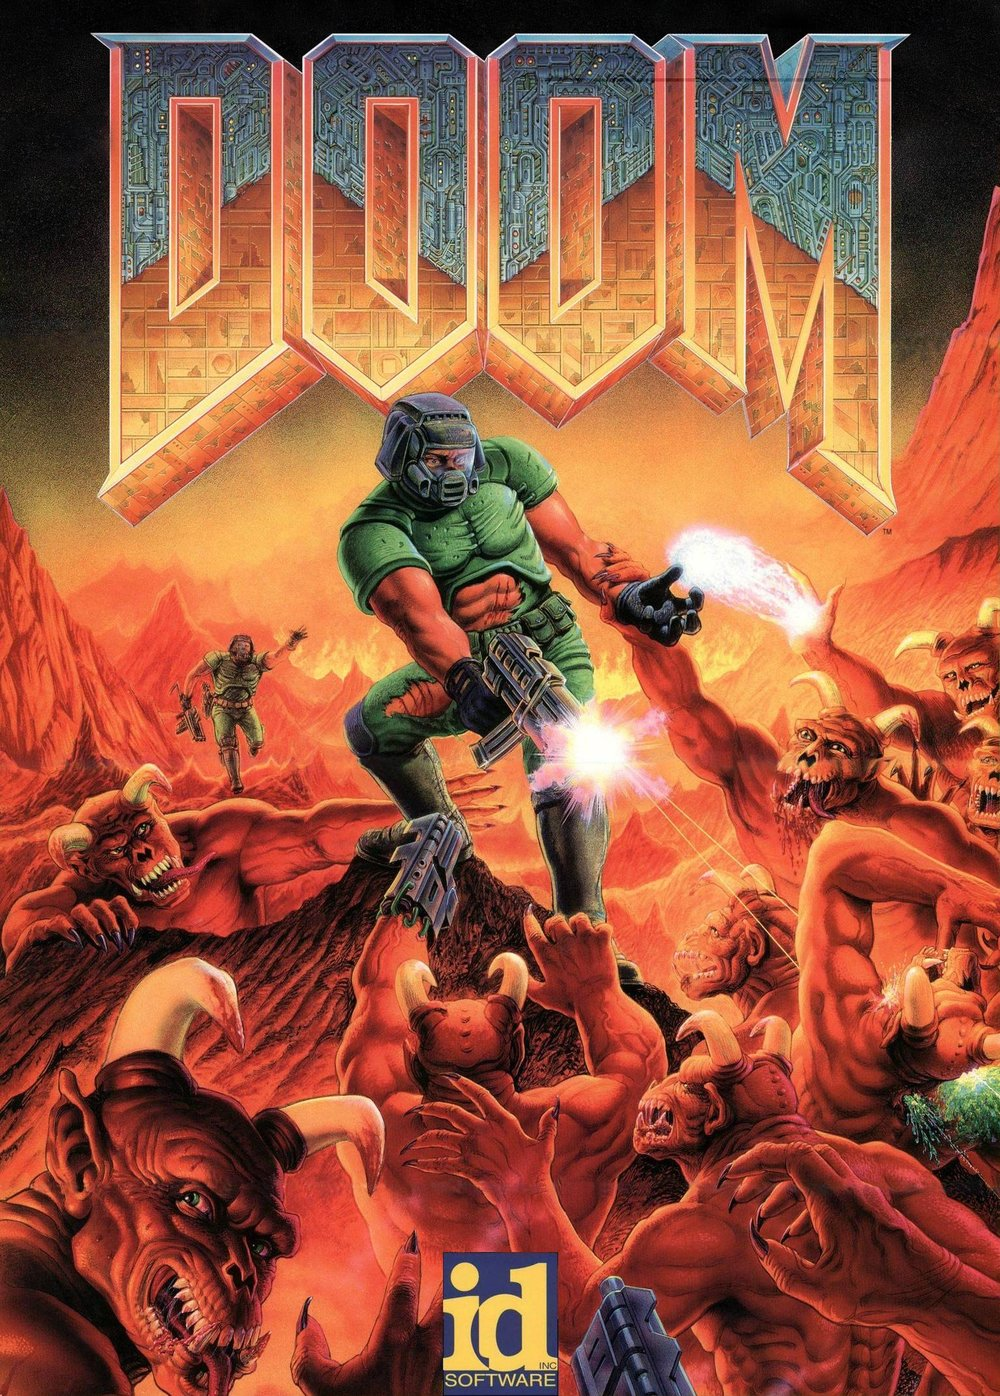 doom+1993+gregor+punchatz - Classic Video Game Art vol. II